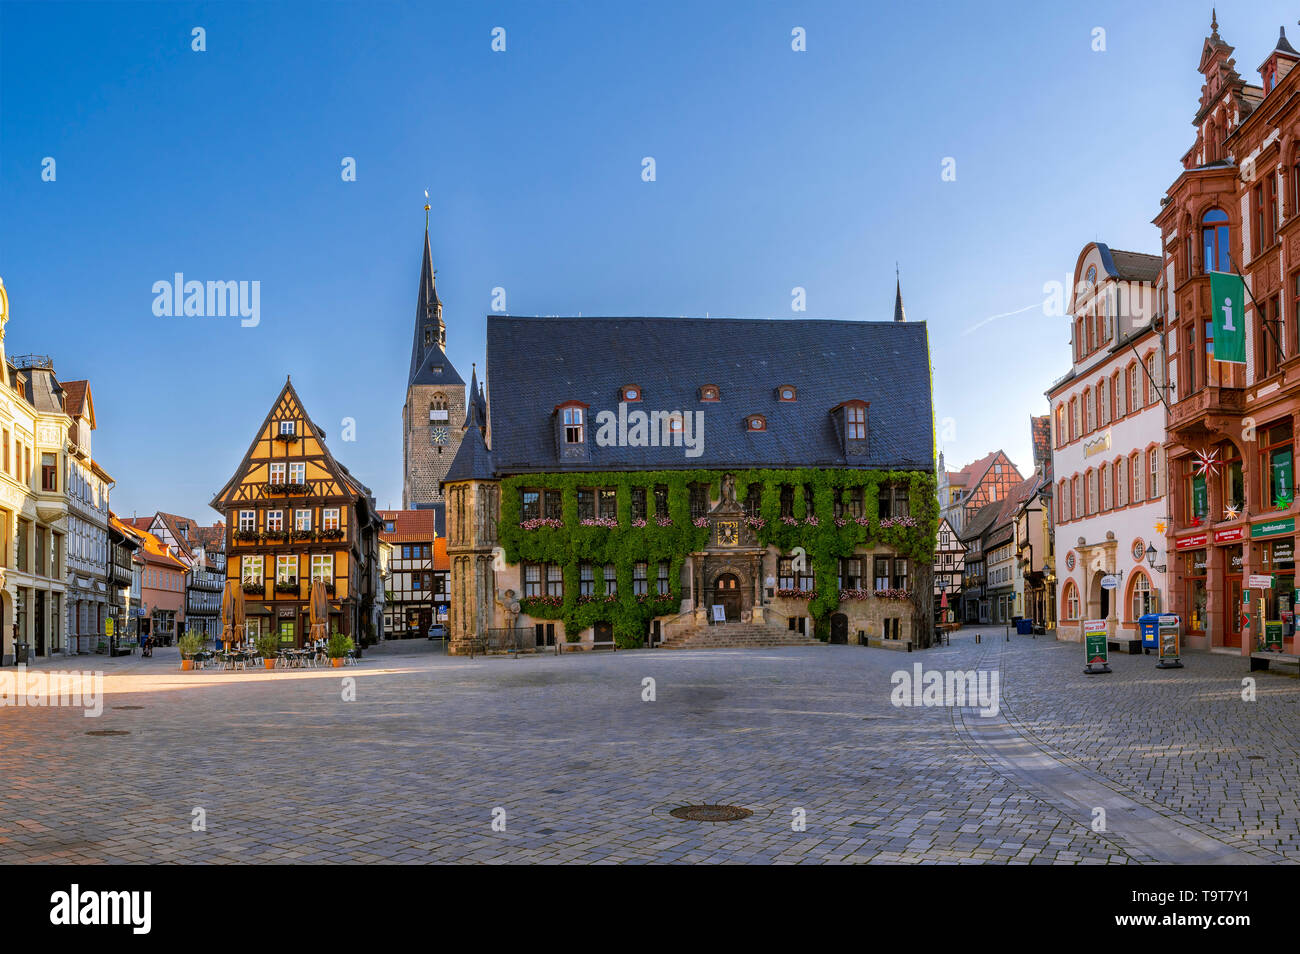 Cafe in the market and city hall in the UNESCO-world cultural heritage of the city of Quedlinburg, Saxony-Anhalt, Germany, Europe, Cafe am Markt und R Stock Photo